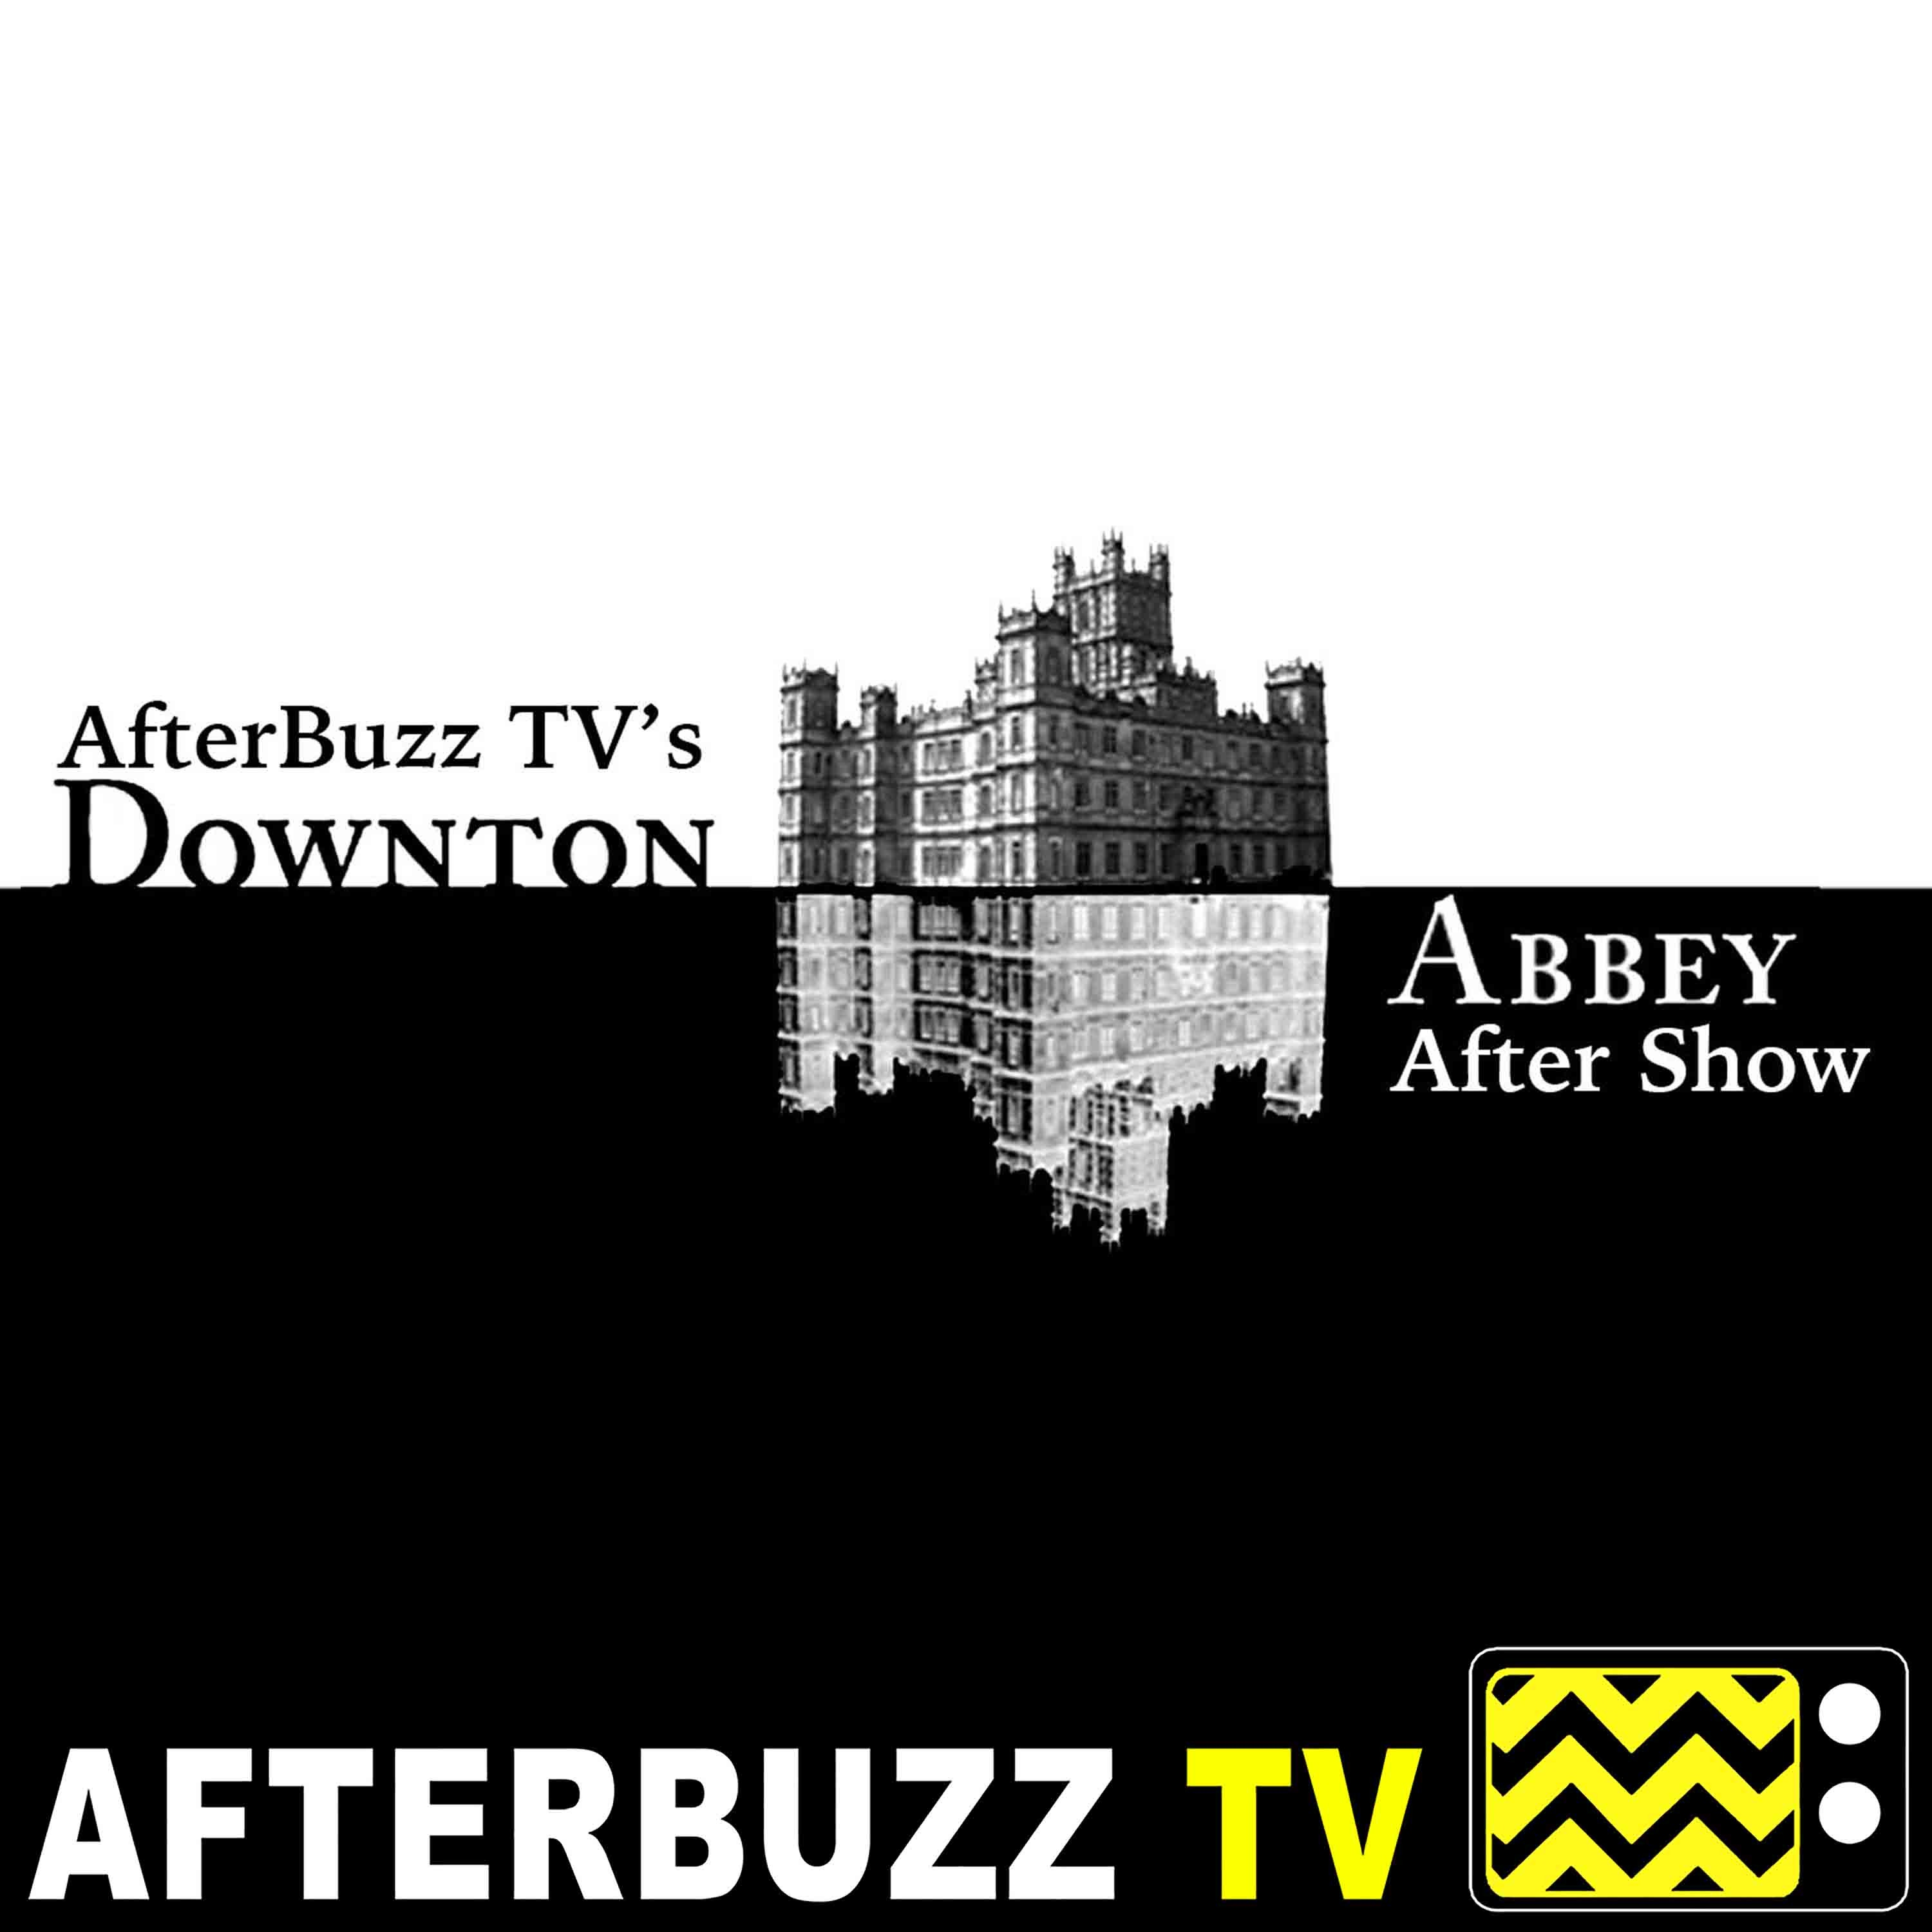 Downton Abbey UK S:6 | Episode 7 | AfterBuzz TV AfterShow